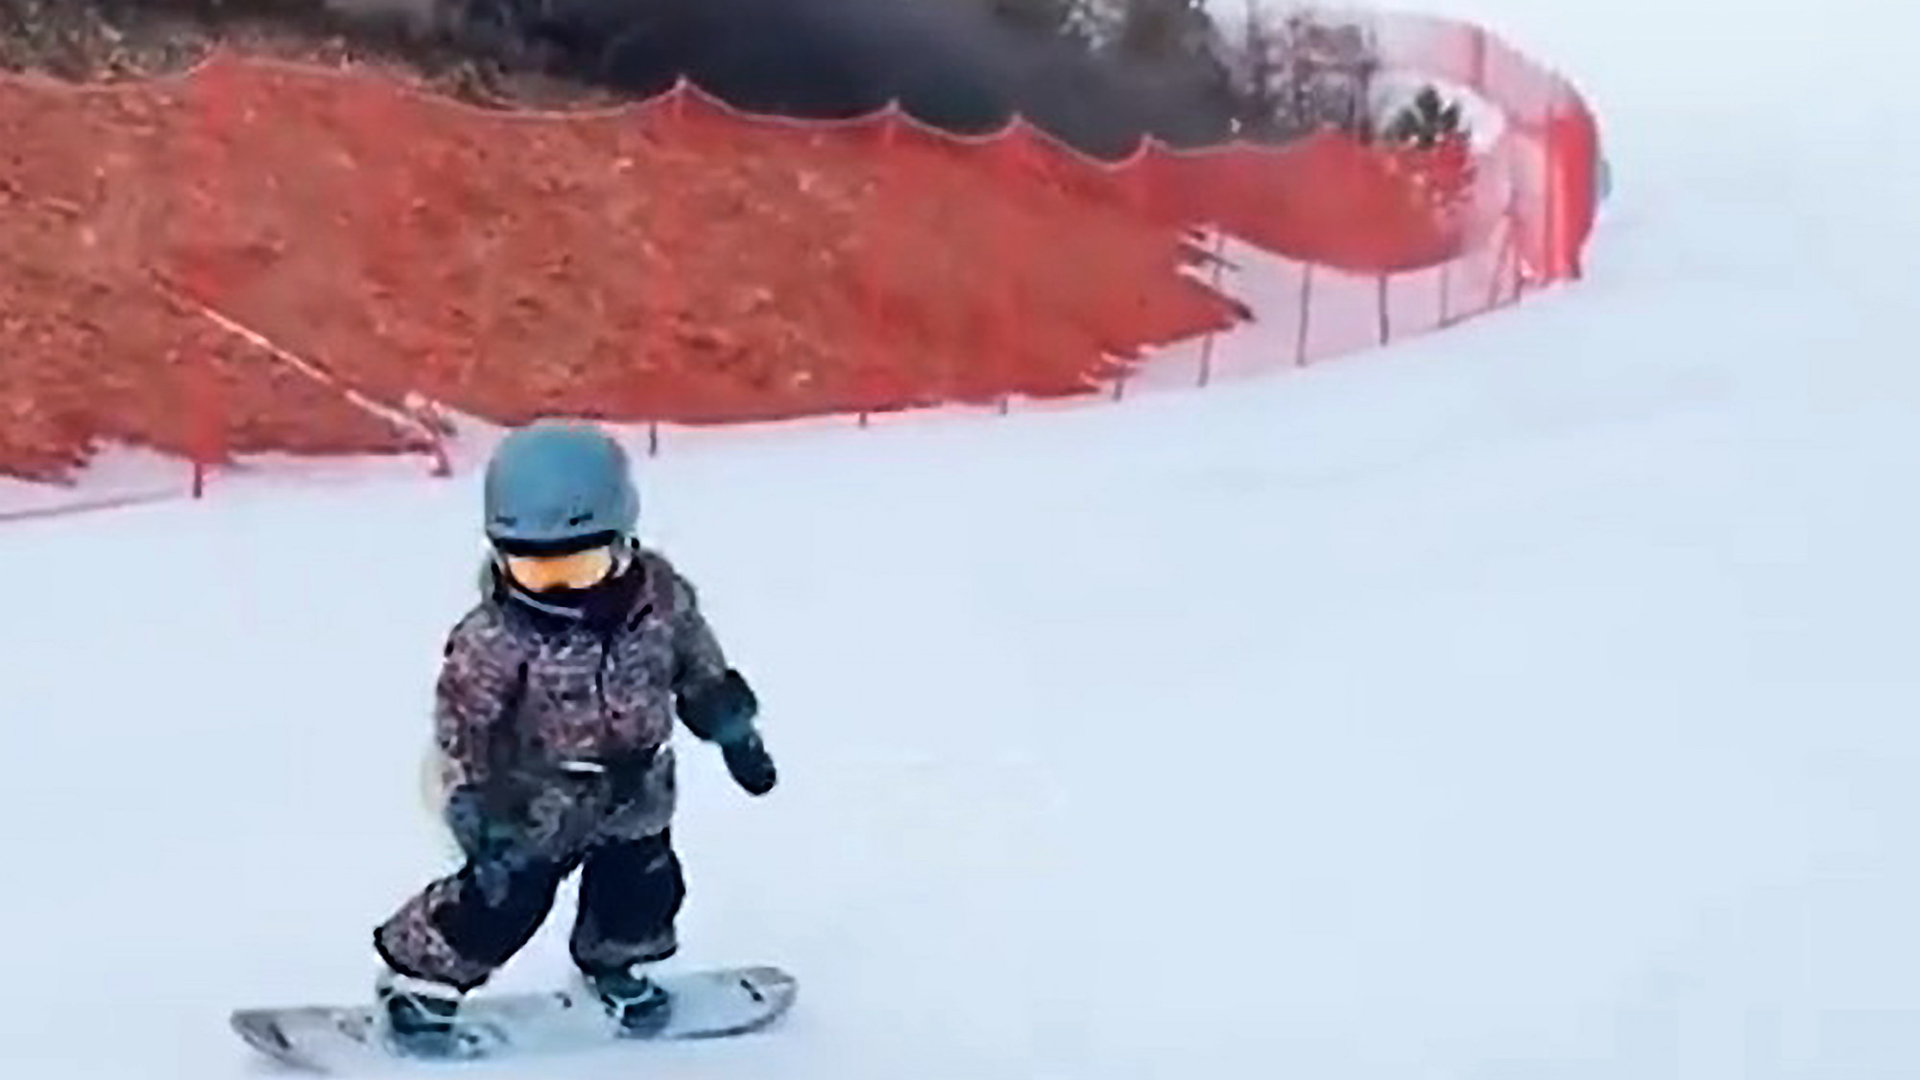 VIDEO: Snowboarding Prodigy Wins National Youth Championship For U8s At The Age Of 5